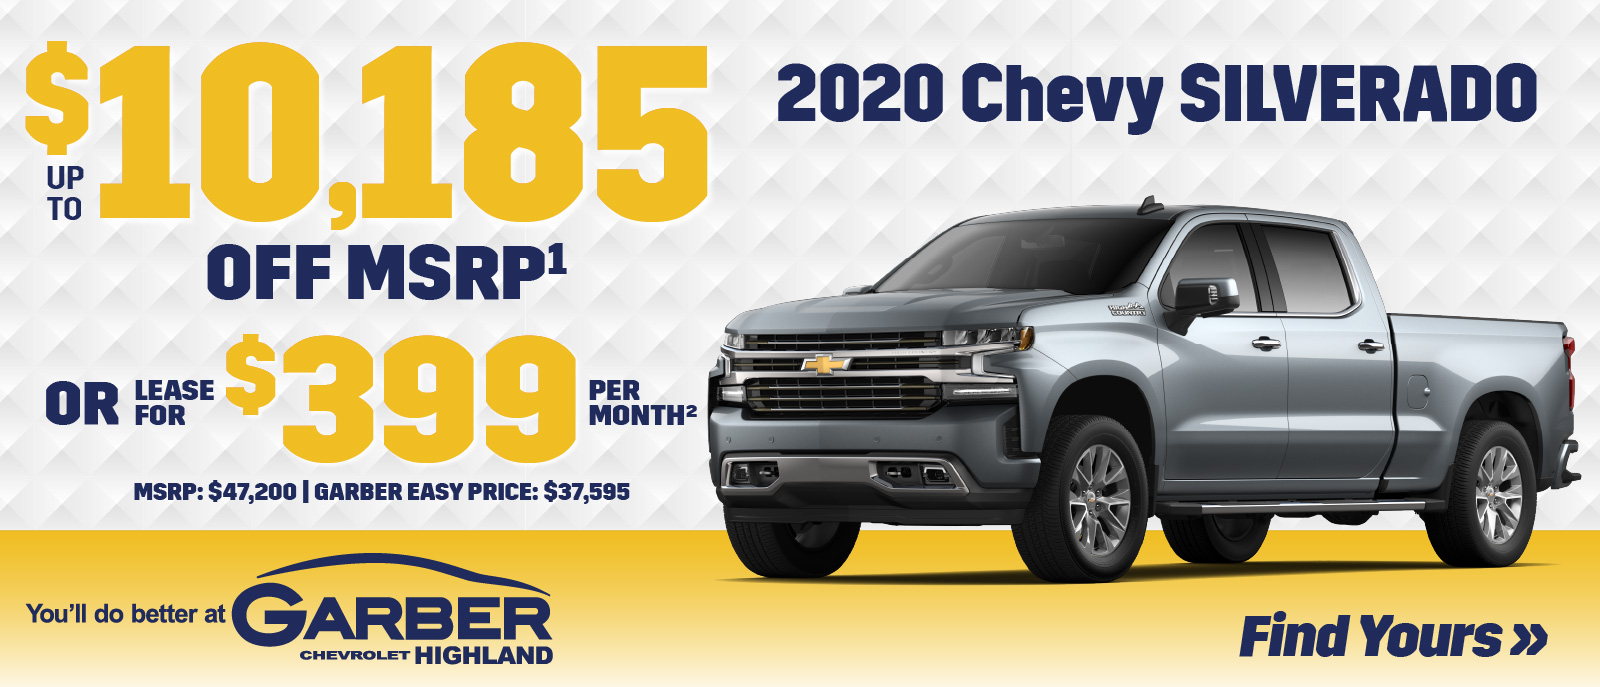 2020 Chevy Silverado | SAVE up to $10,185 off MSRP or LEASE for $399 per month | MSRP $47,200 | GARBER EASY PRICE $37,595